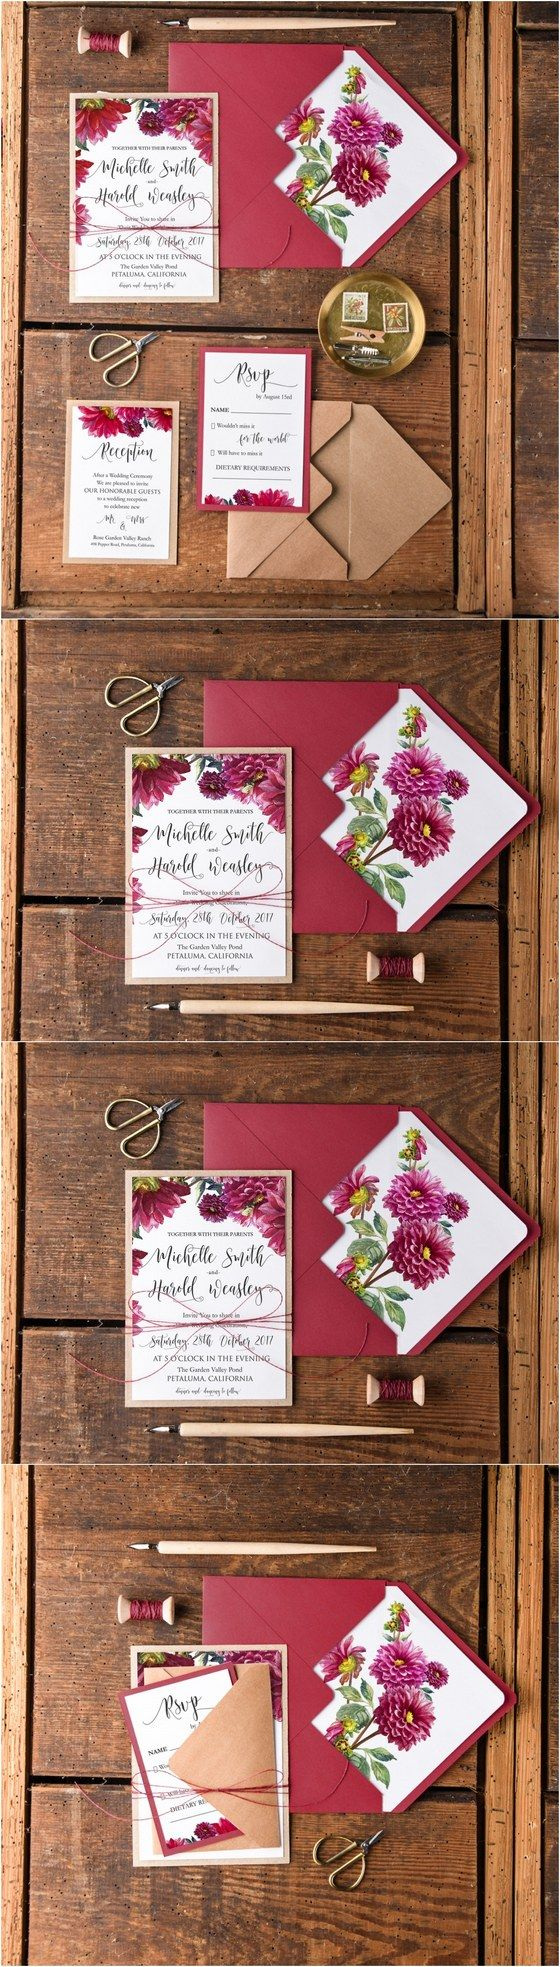 Fall wedding ideas - Rustic fall deep red watercolor wedding ...